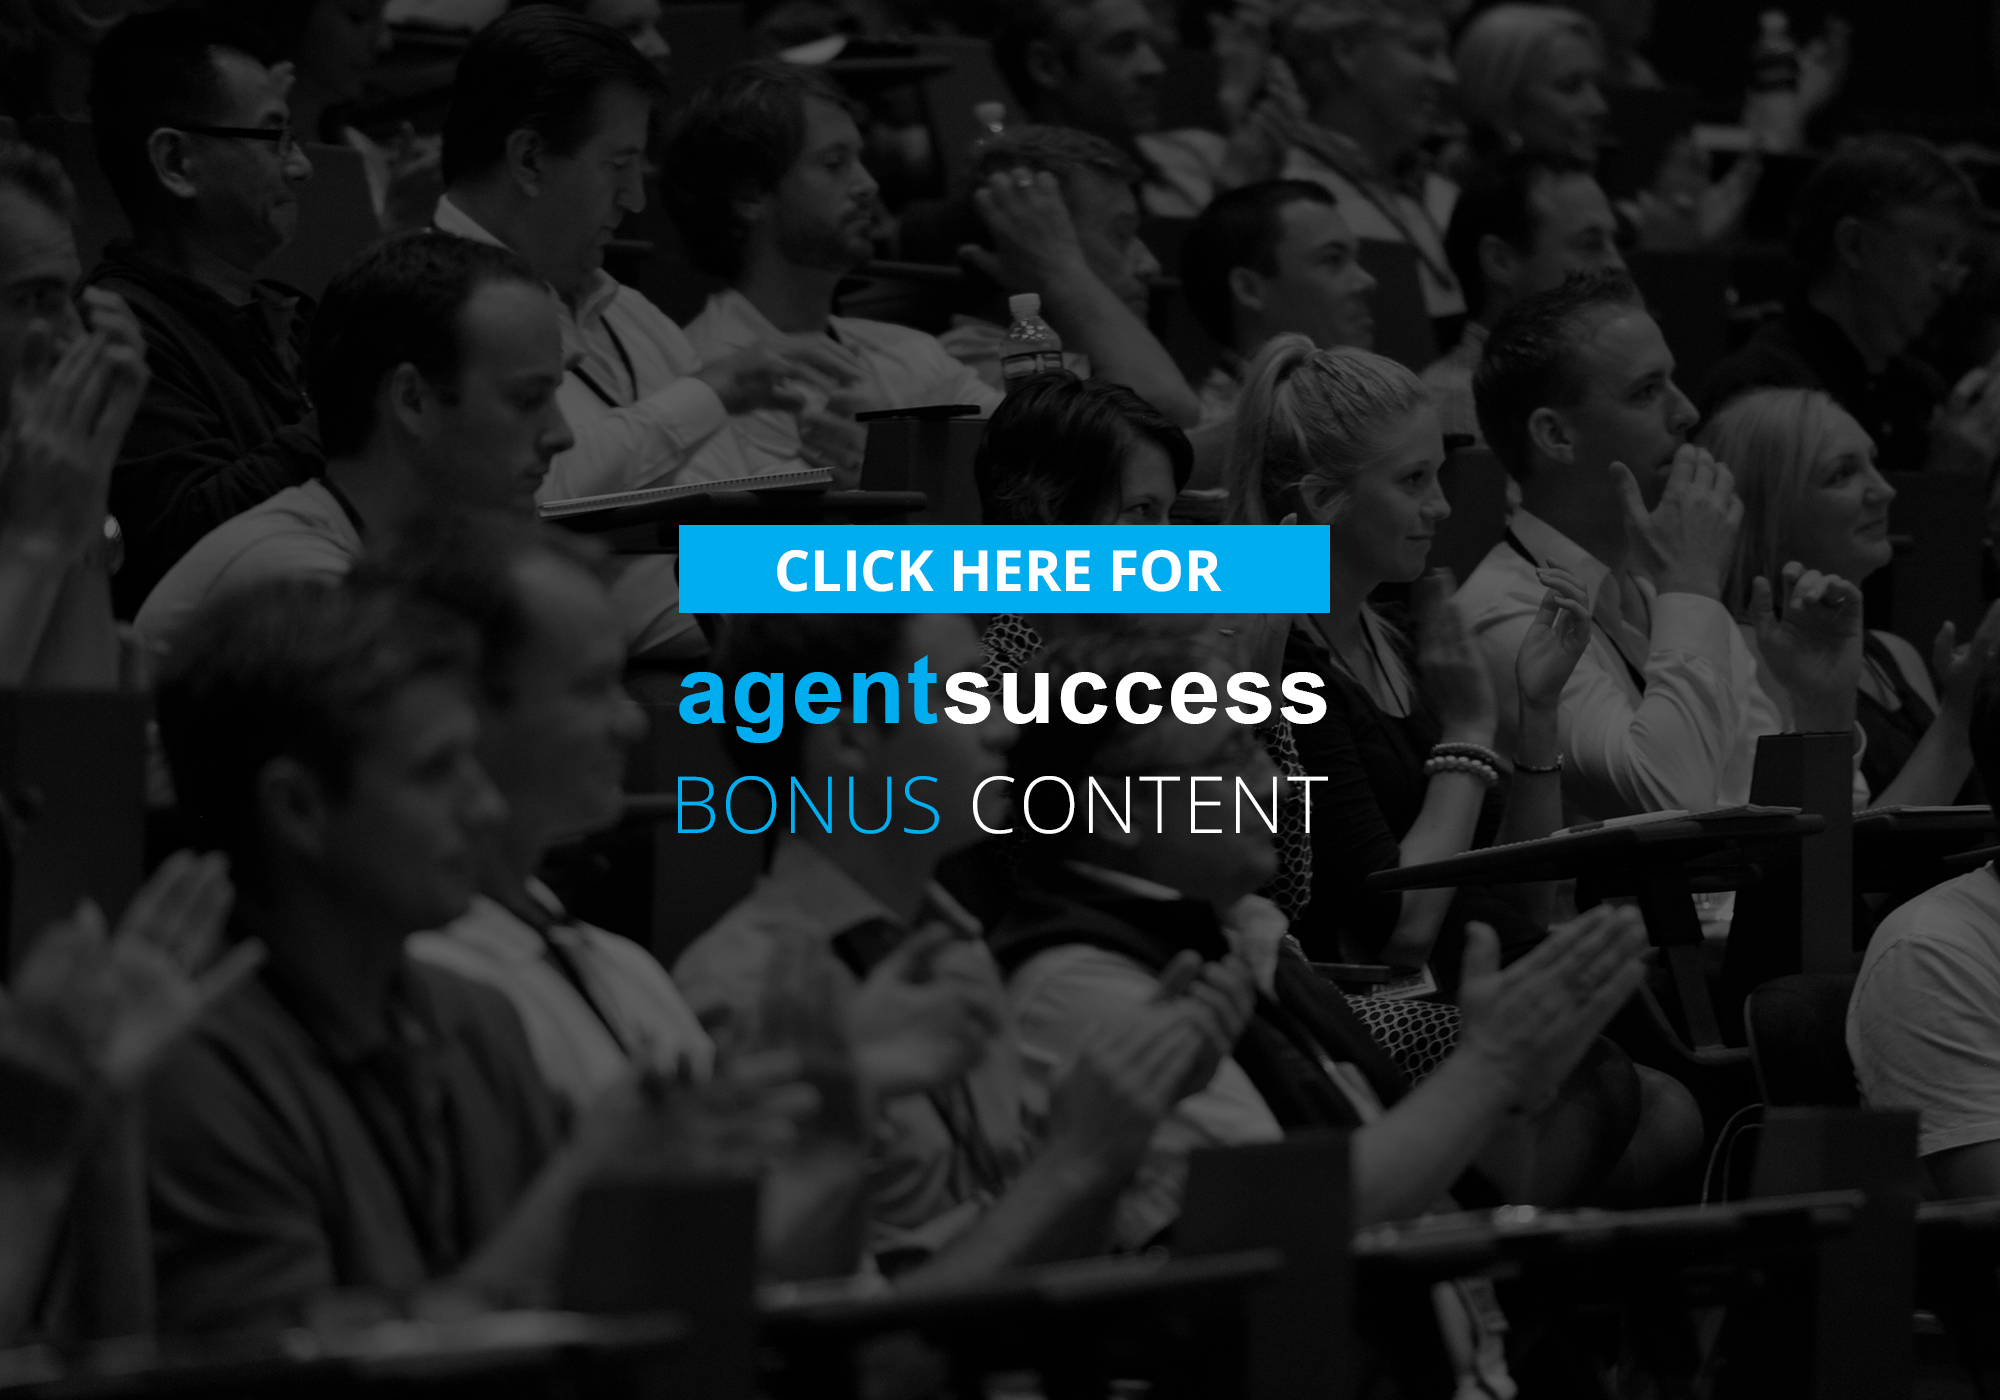 Website_AgentSuccess_Click